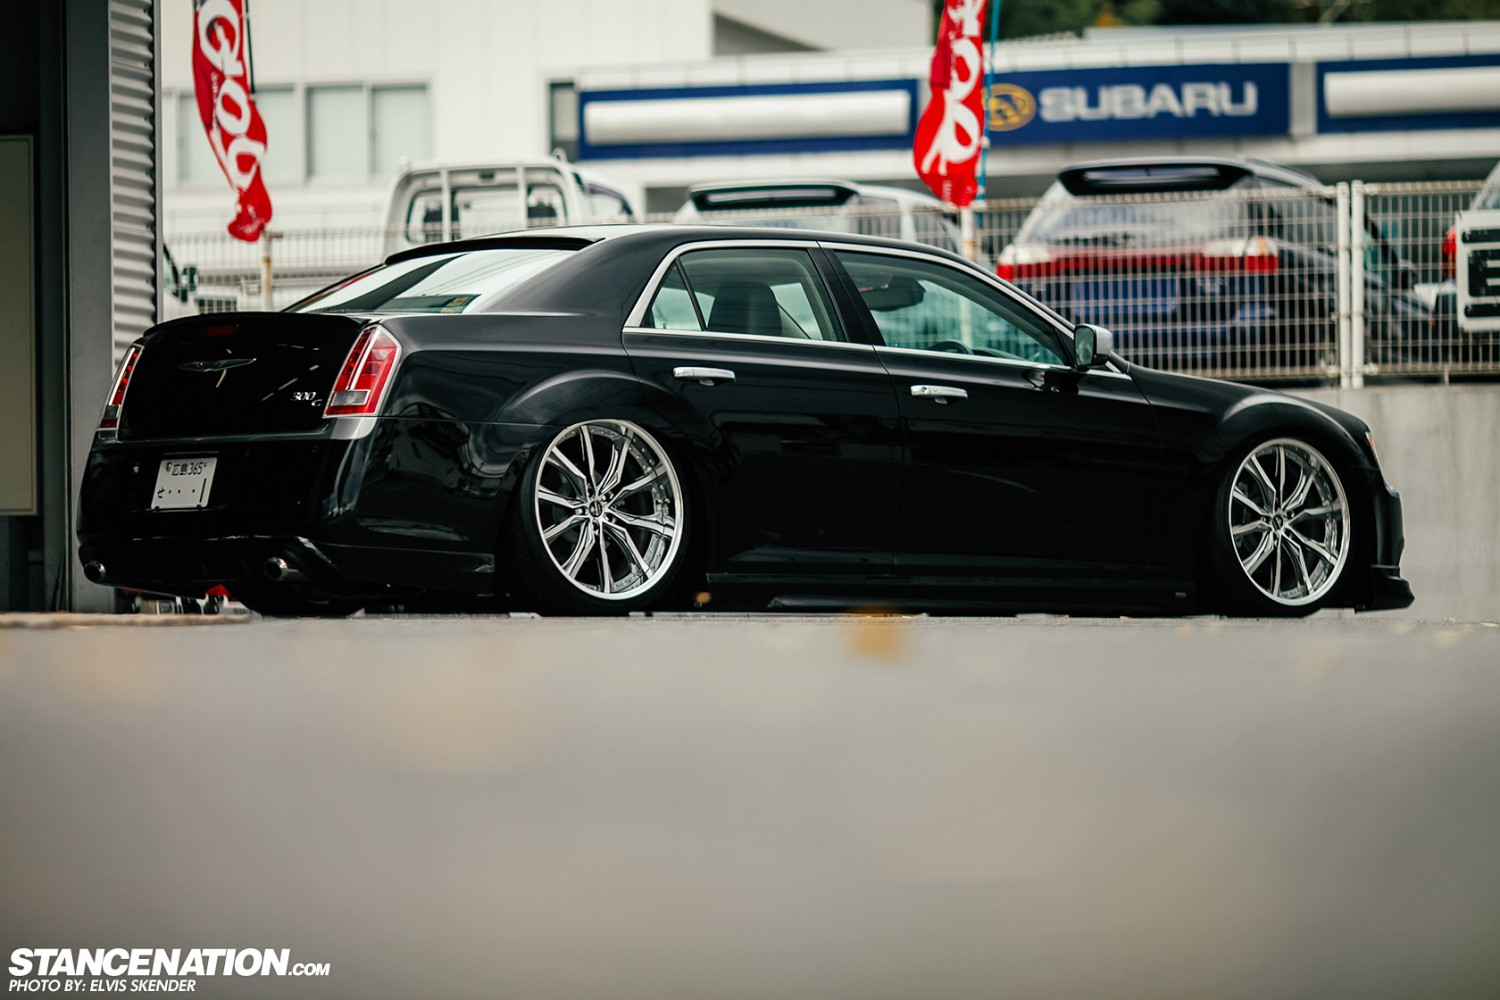 2014 Chrysler 300C For Sale >> A Closer Look At Aimgain Japan // The 300C. | StanceNation ...